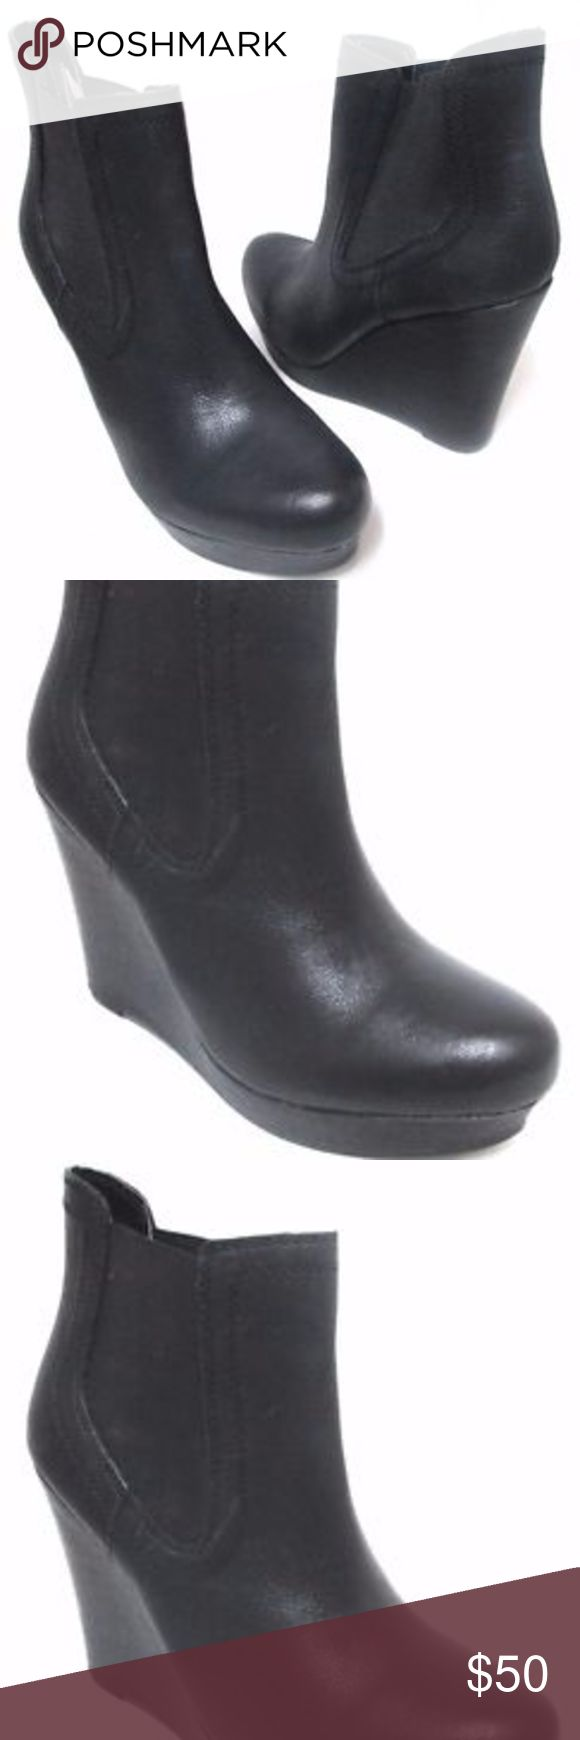 """Seychelles leather ankle pull-on boots NEW Sz 10 Seychelles boots new without box. Size 10, leather, heel is about 4.3"""", front platform is about 1"""", top to bottom is 9.1"""". Pet and smoke free home. Seychelles Shoes Ankle Boots & Booties"""